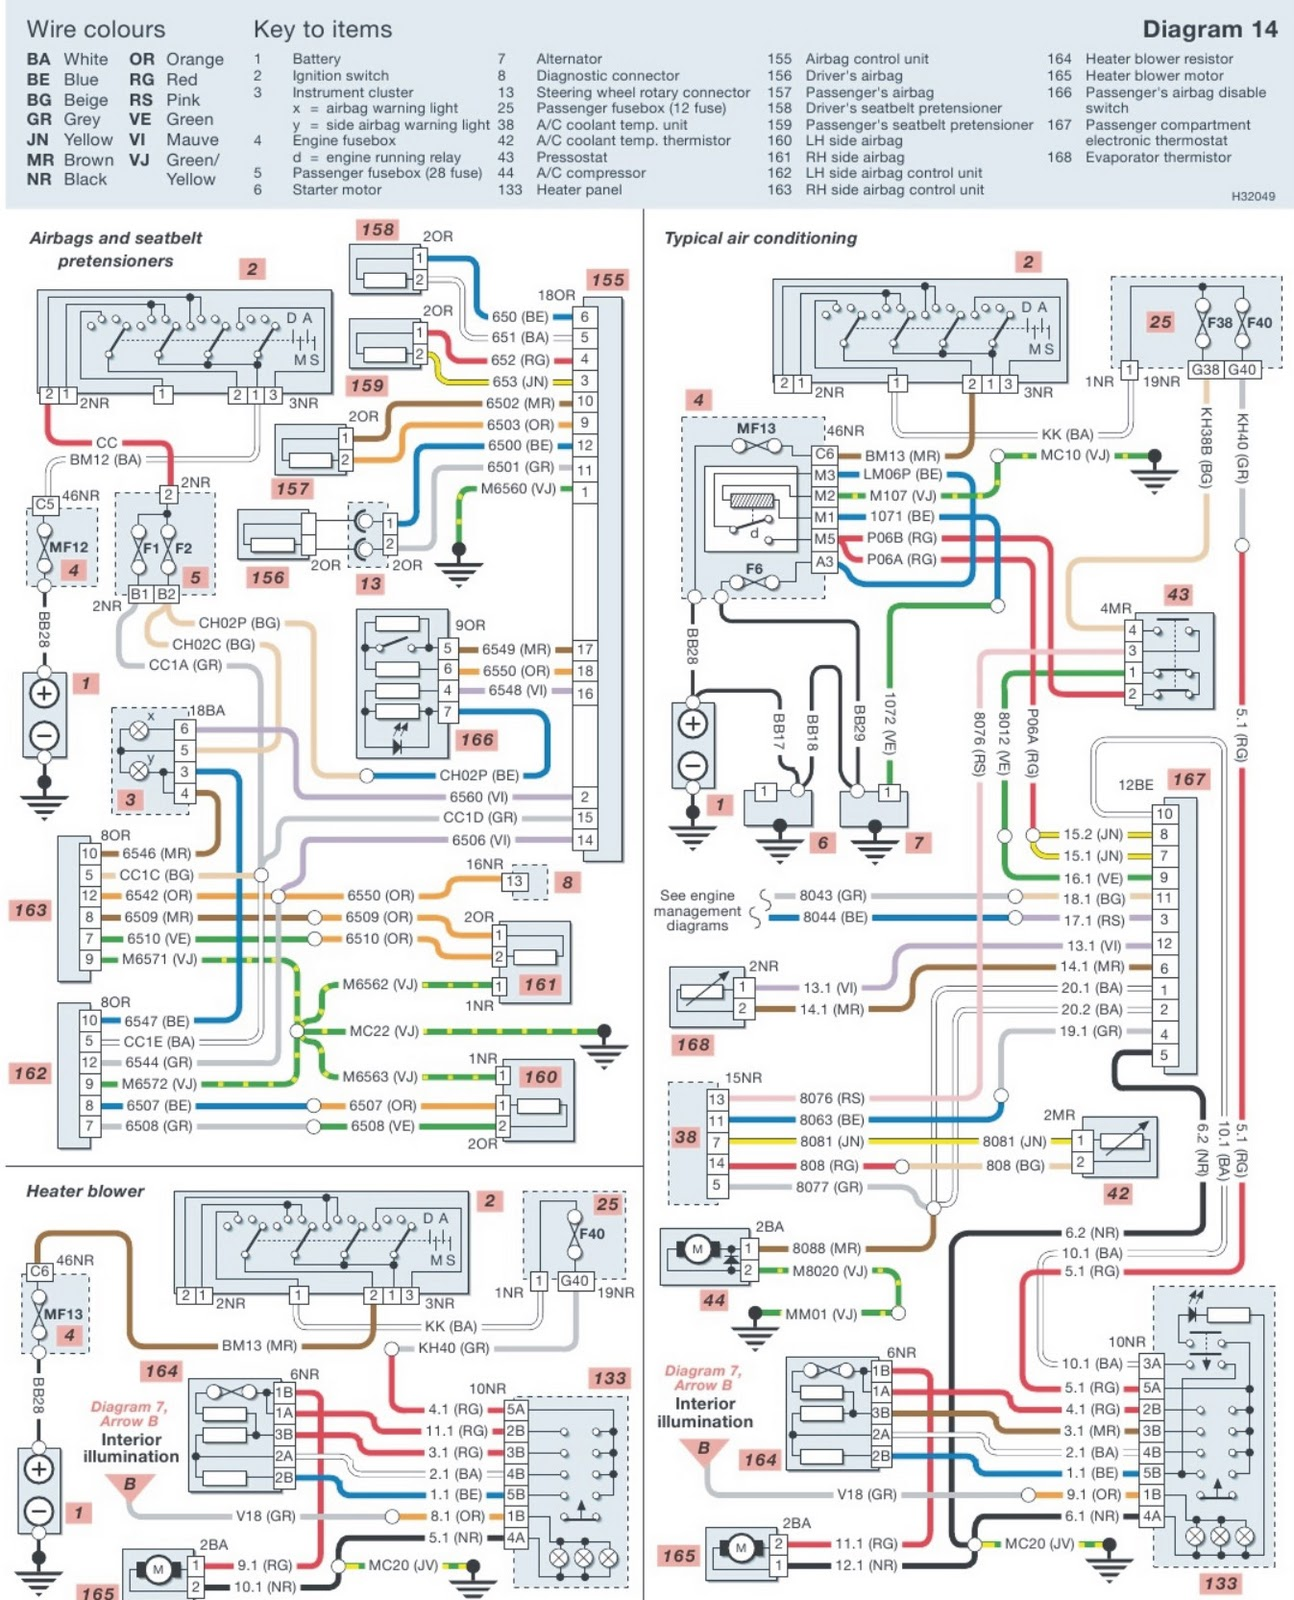 peugeot 206 cc radio wiring diagram peugeot image peugeot 206 alternator wiring diagram peugeot auto wiring on peugeot 206 cc radio wiring diagram